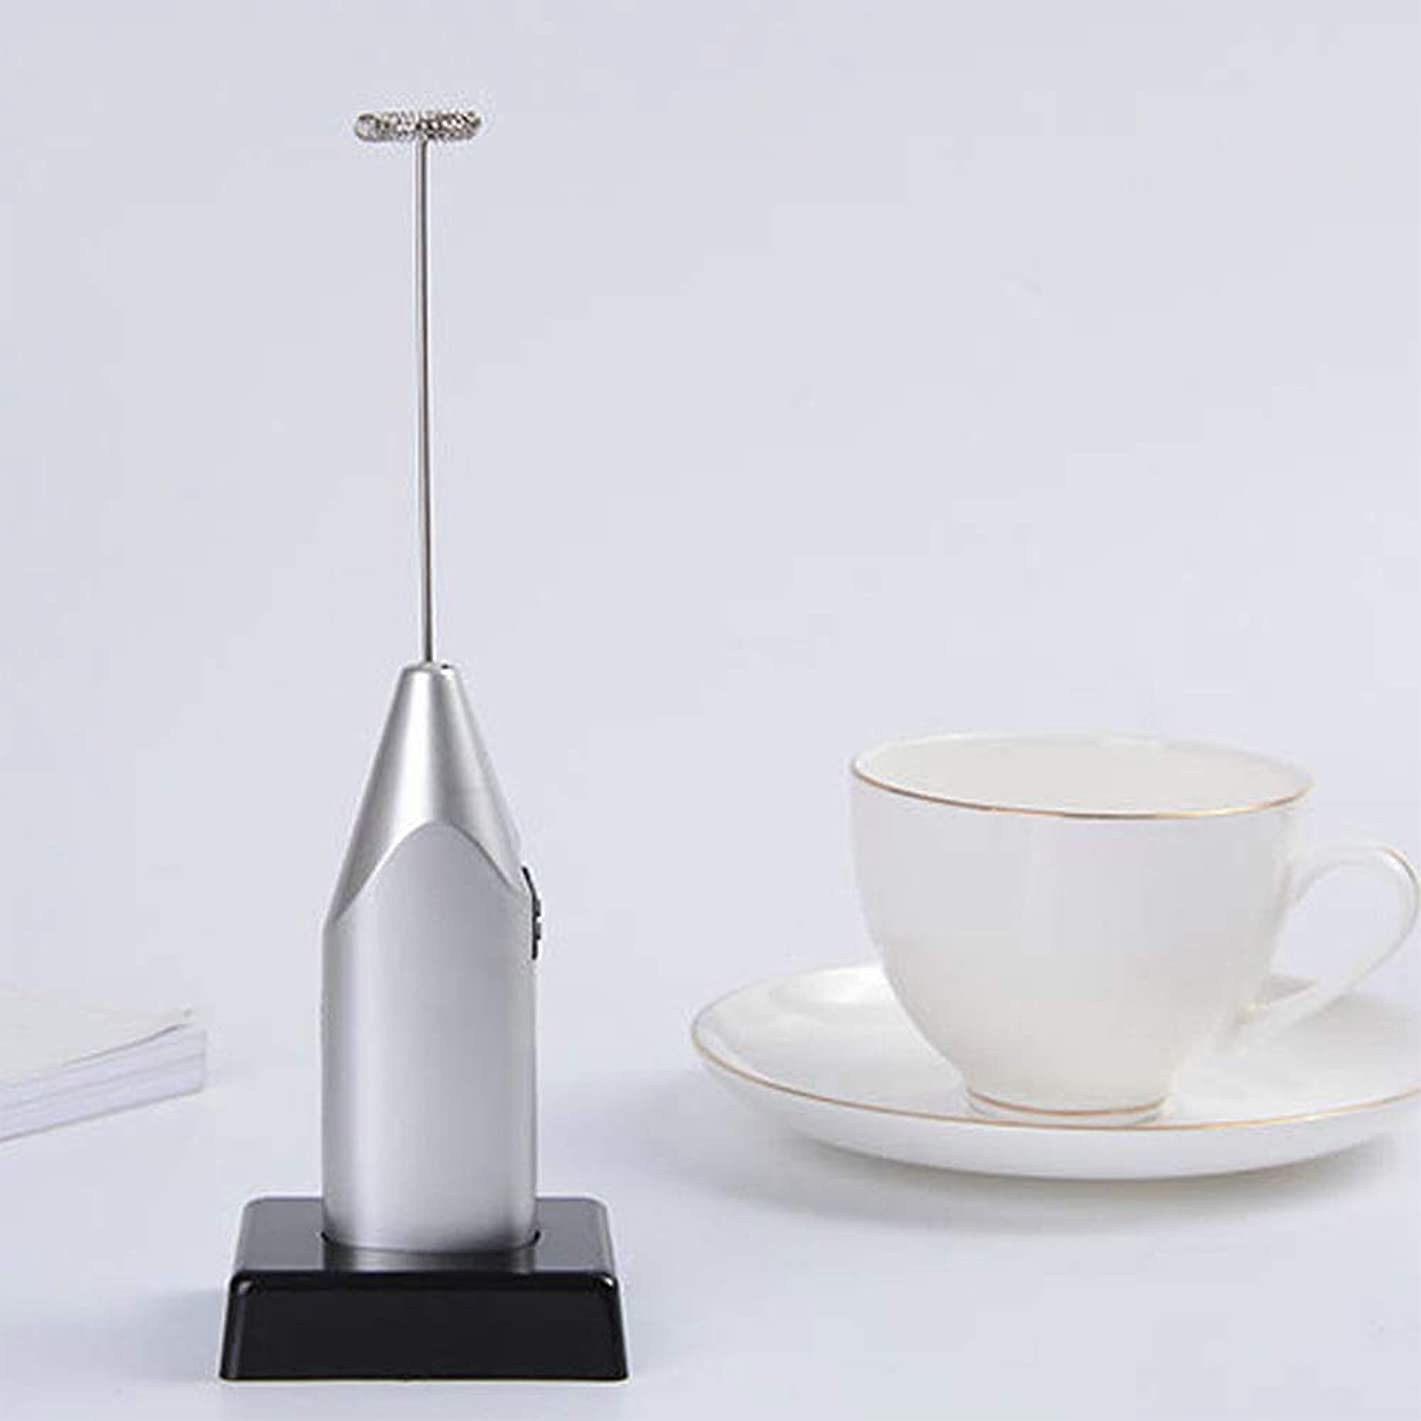 Electric Milk Frother Mixer Mini Egg Whisk Portable Handheld Foam Maker Battery Operated Milk Egg Beater Foamer Whisk Stirrer Beater Kitchen Tools